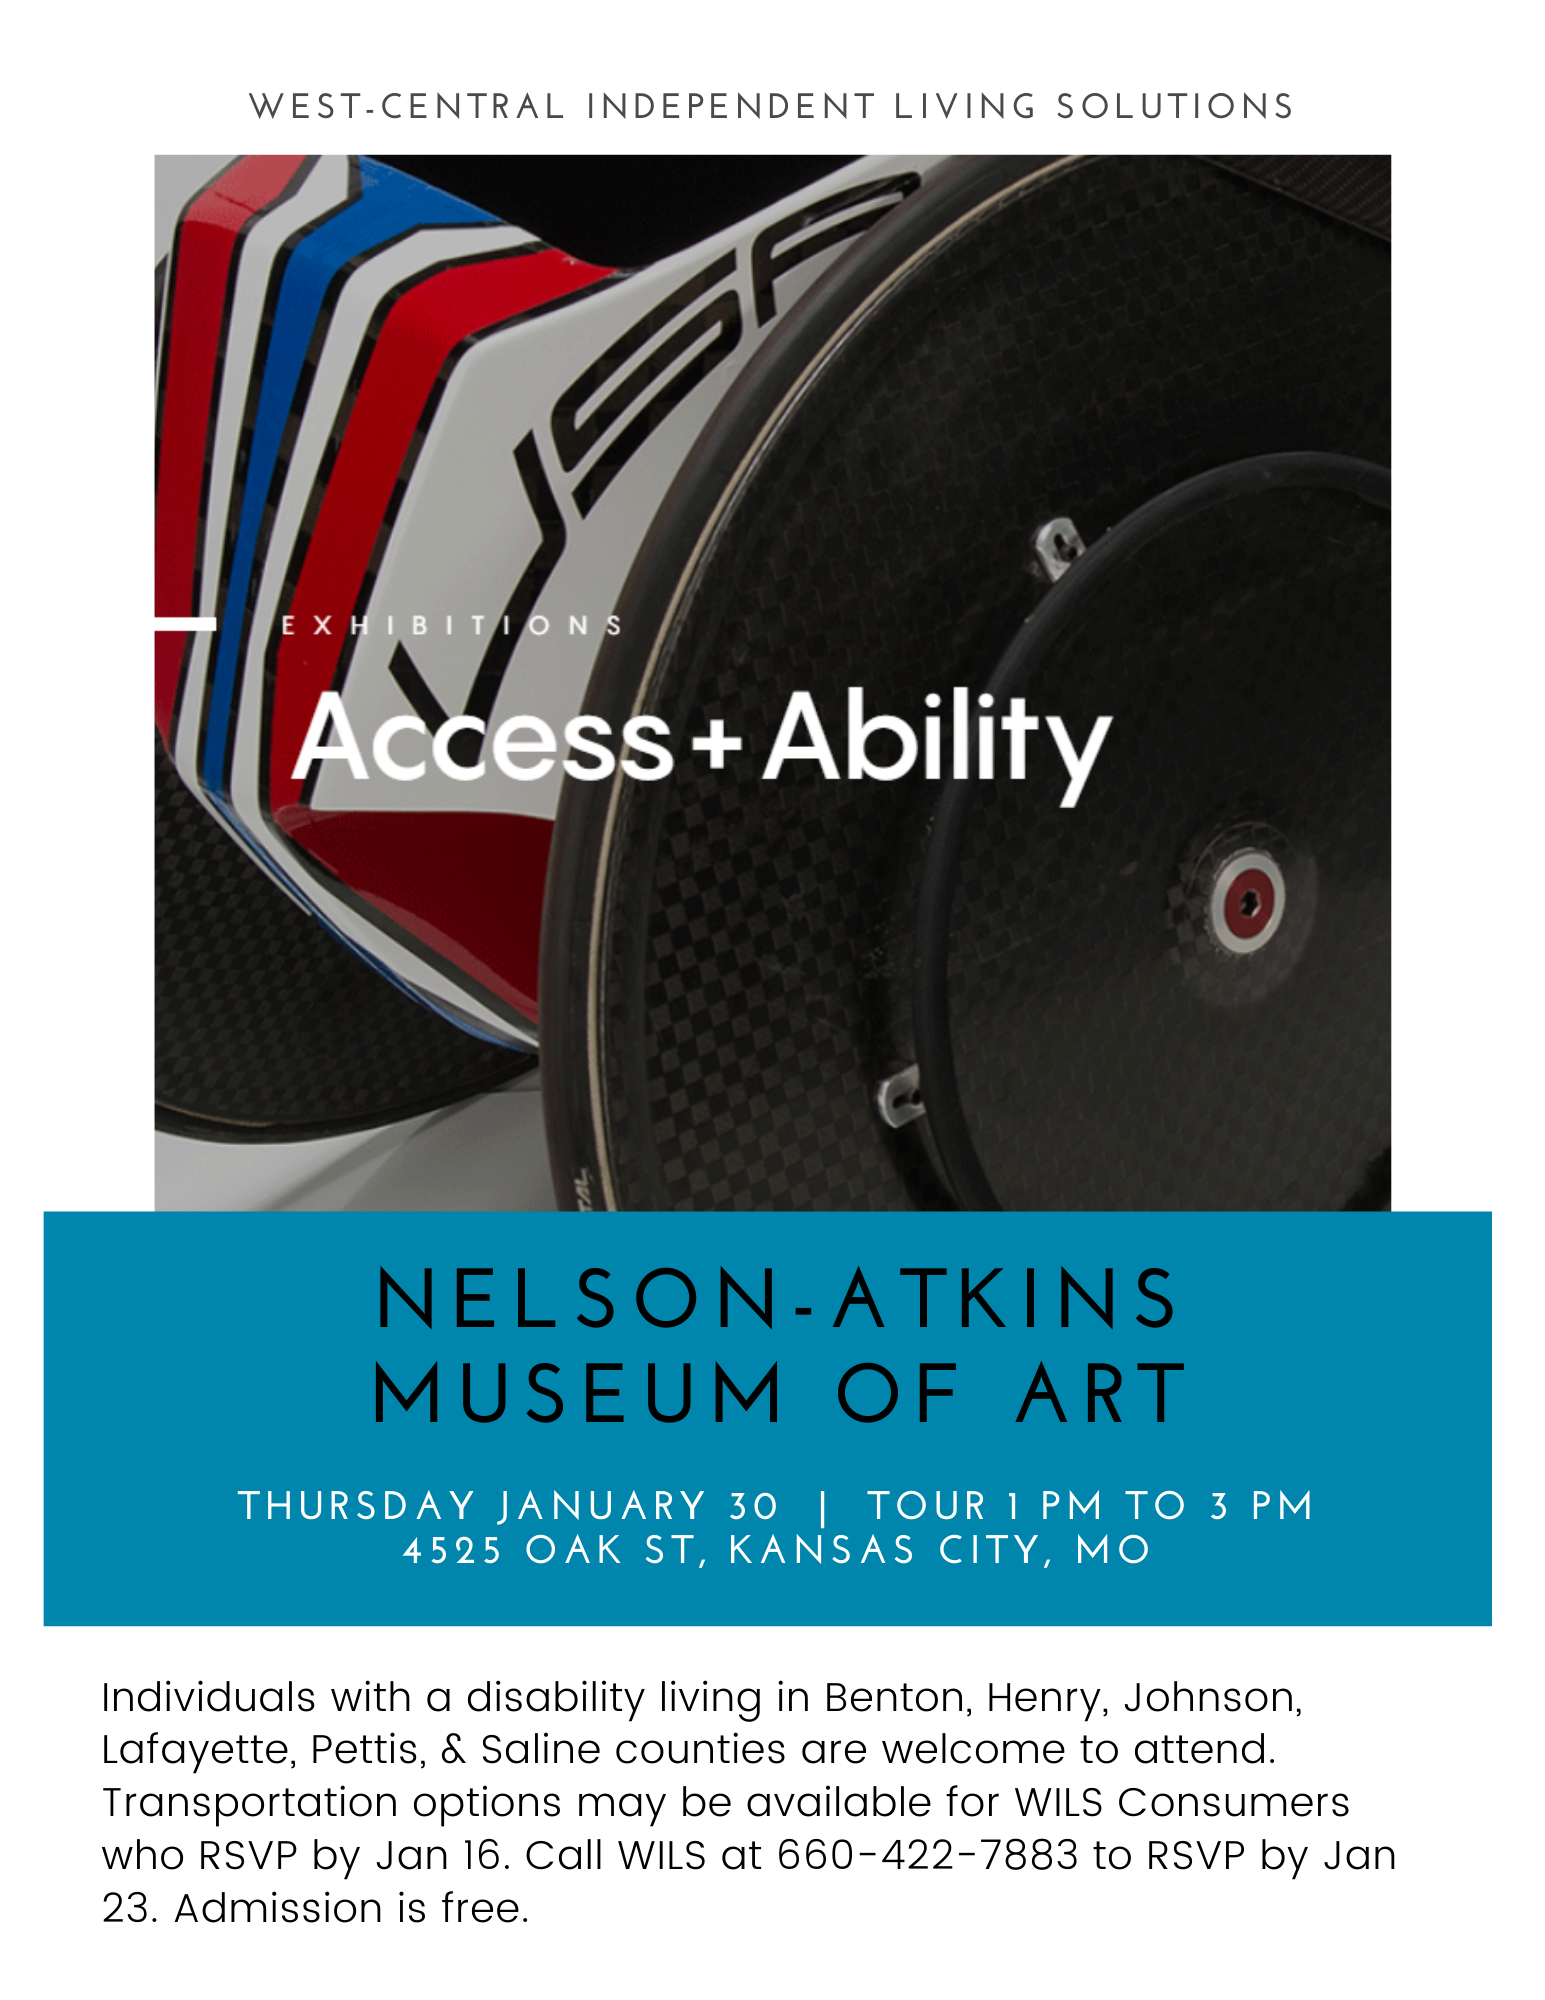 Individuals with a disability living in Benton, Henry, Johnson, Lafayette, Pettis, & Saline counties are welcome to attend. Transportation options may be available for WILS Consumers who RSVP by Jan 16. Call WILS at 660-422-7883 to RSVP by Jan 23. Admission is free.